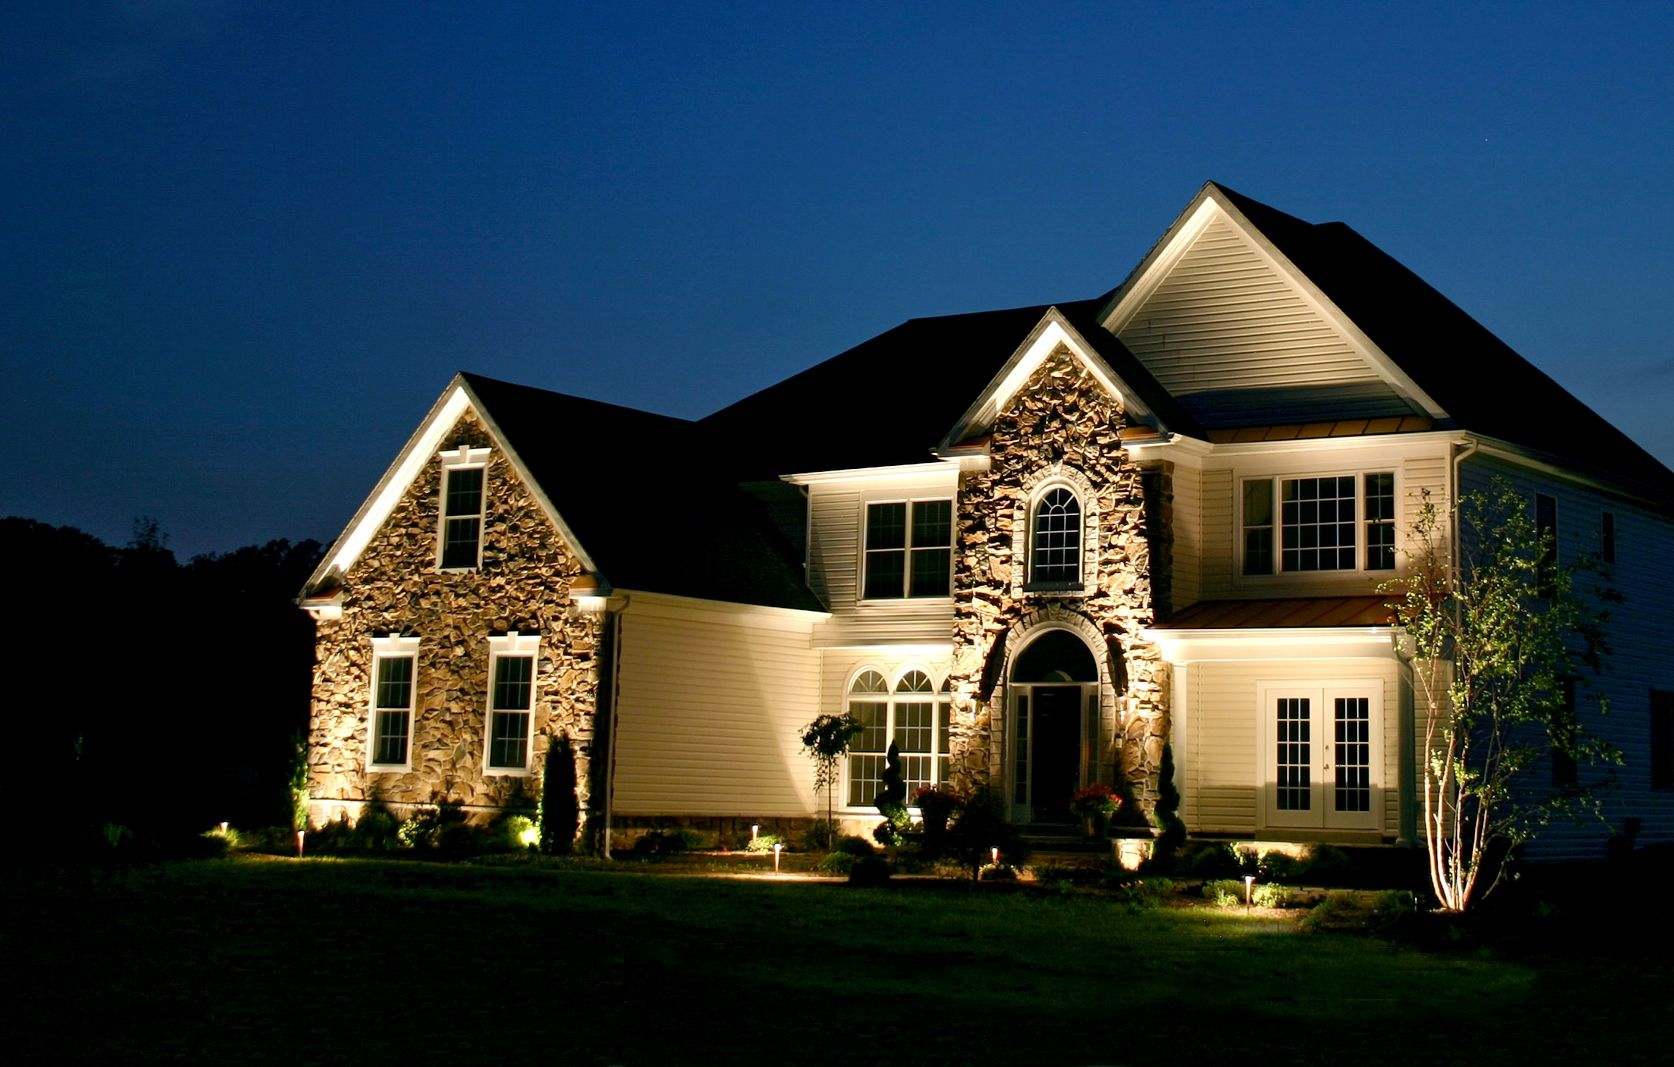 exterior house lighting design. Outdoor Accent Lighting  If you need some landscaping done around your house or workplace call Lawn Tigers Landscaping in Walled Lake MI at 248